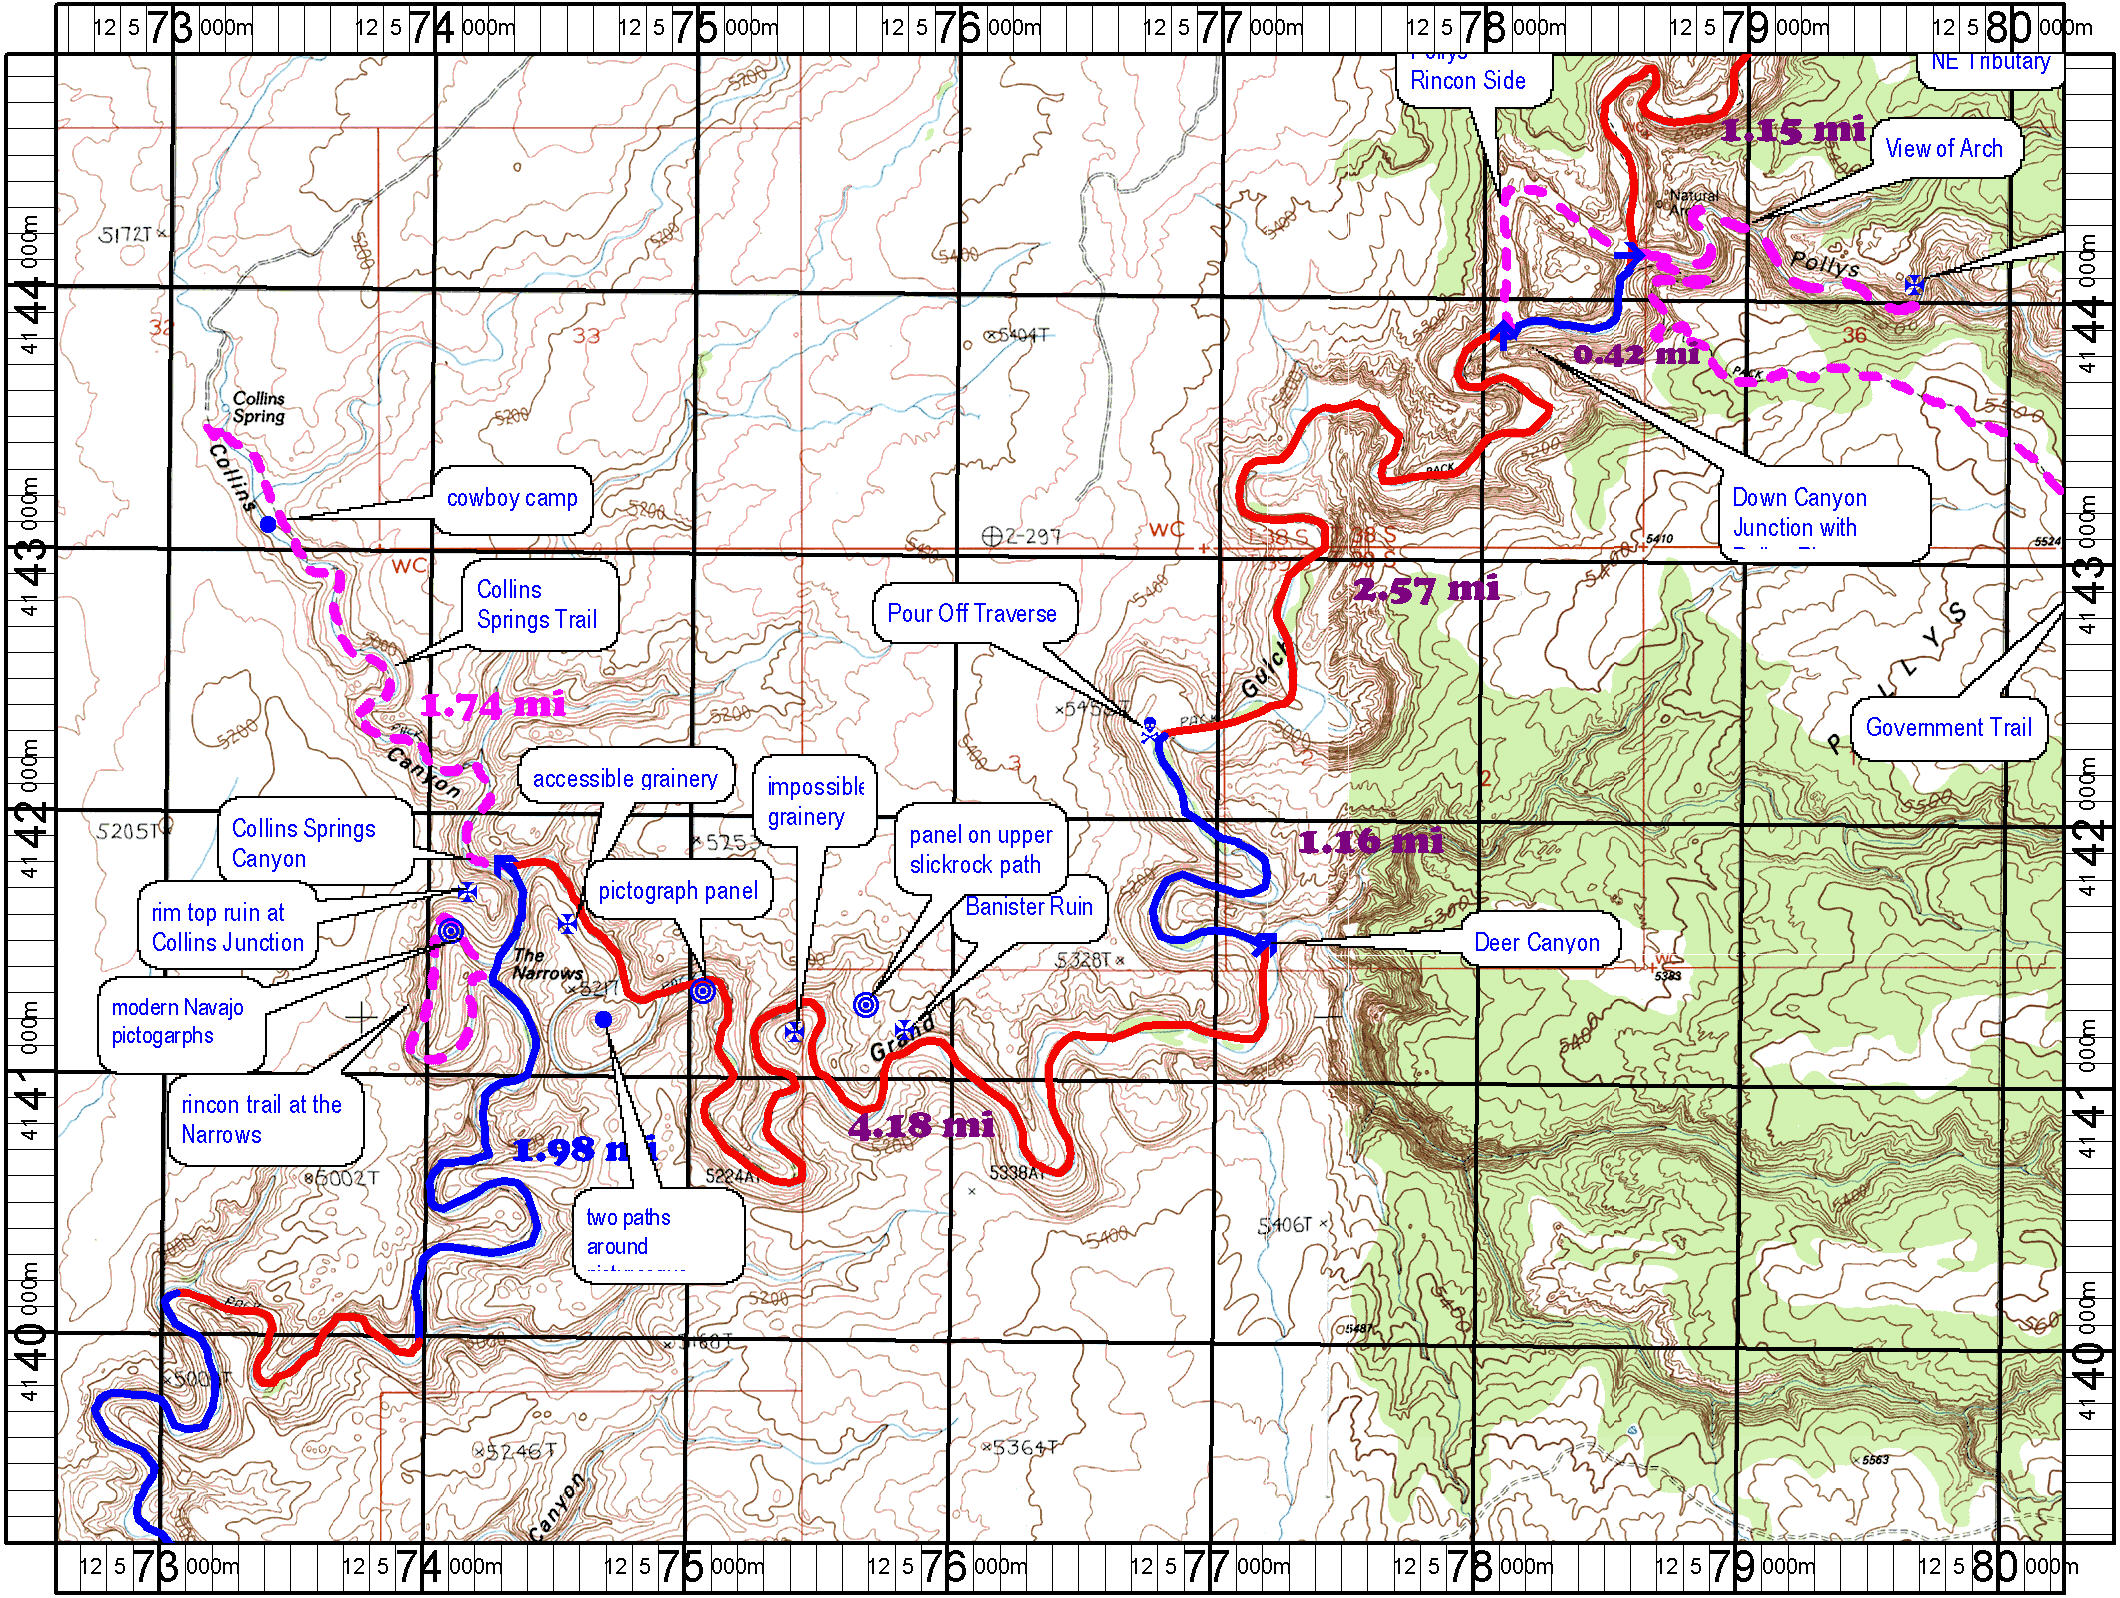 Topo Map of Grand Gulch Section 4: Pollys Canyon to Collins Spring Canyon High Resolutio